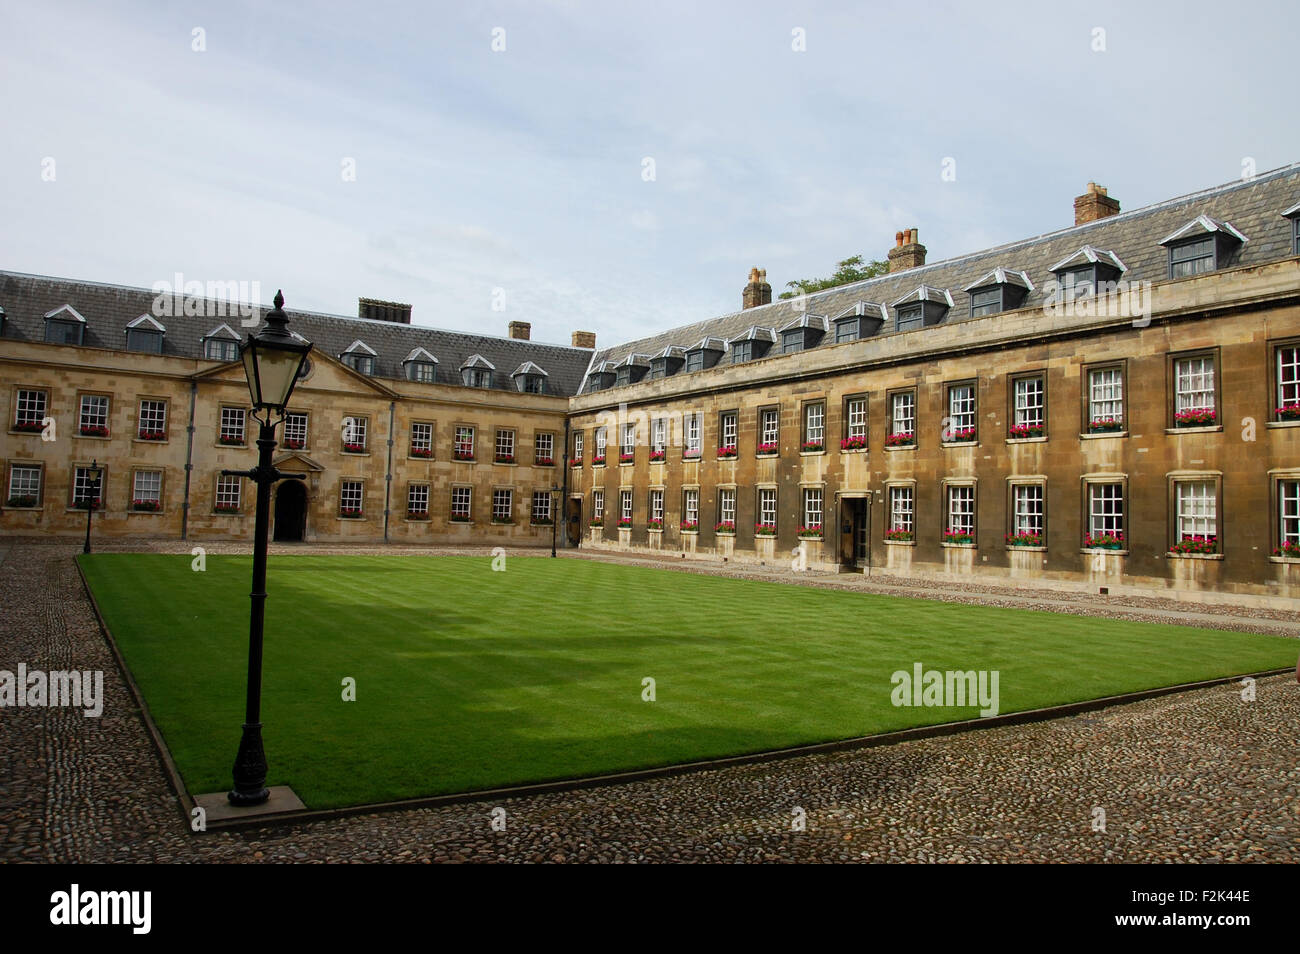 Peterhouse College, Cambridge, England. - Stock Image